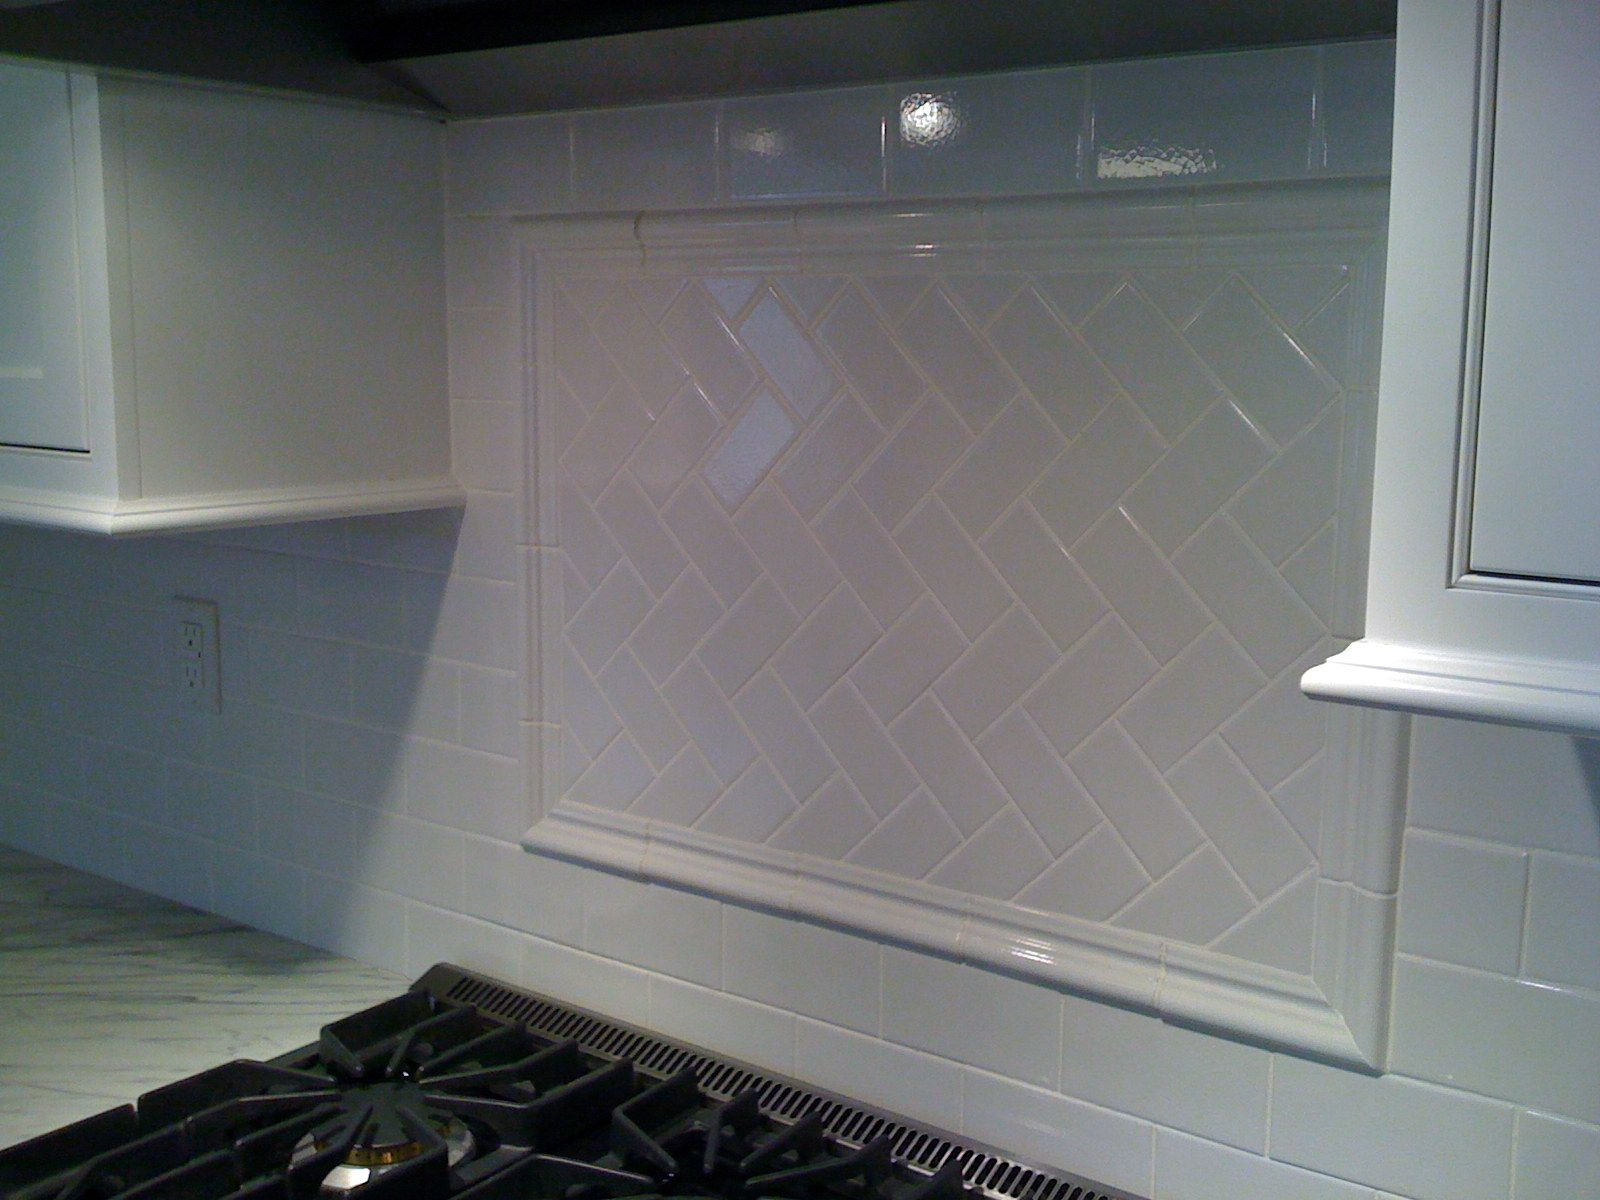 White subway tile backsplash dreamy cottagefarmhouse decor white subway tile with herringbone backsplash behind stove but needs a darker grout dailygadgetfo Images